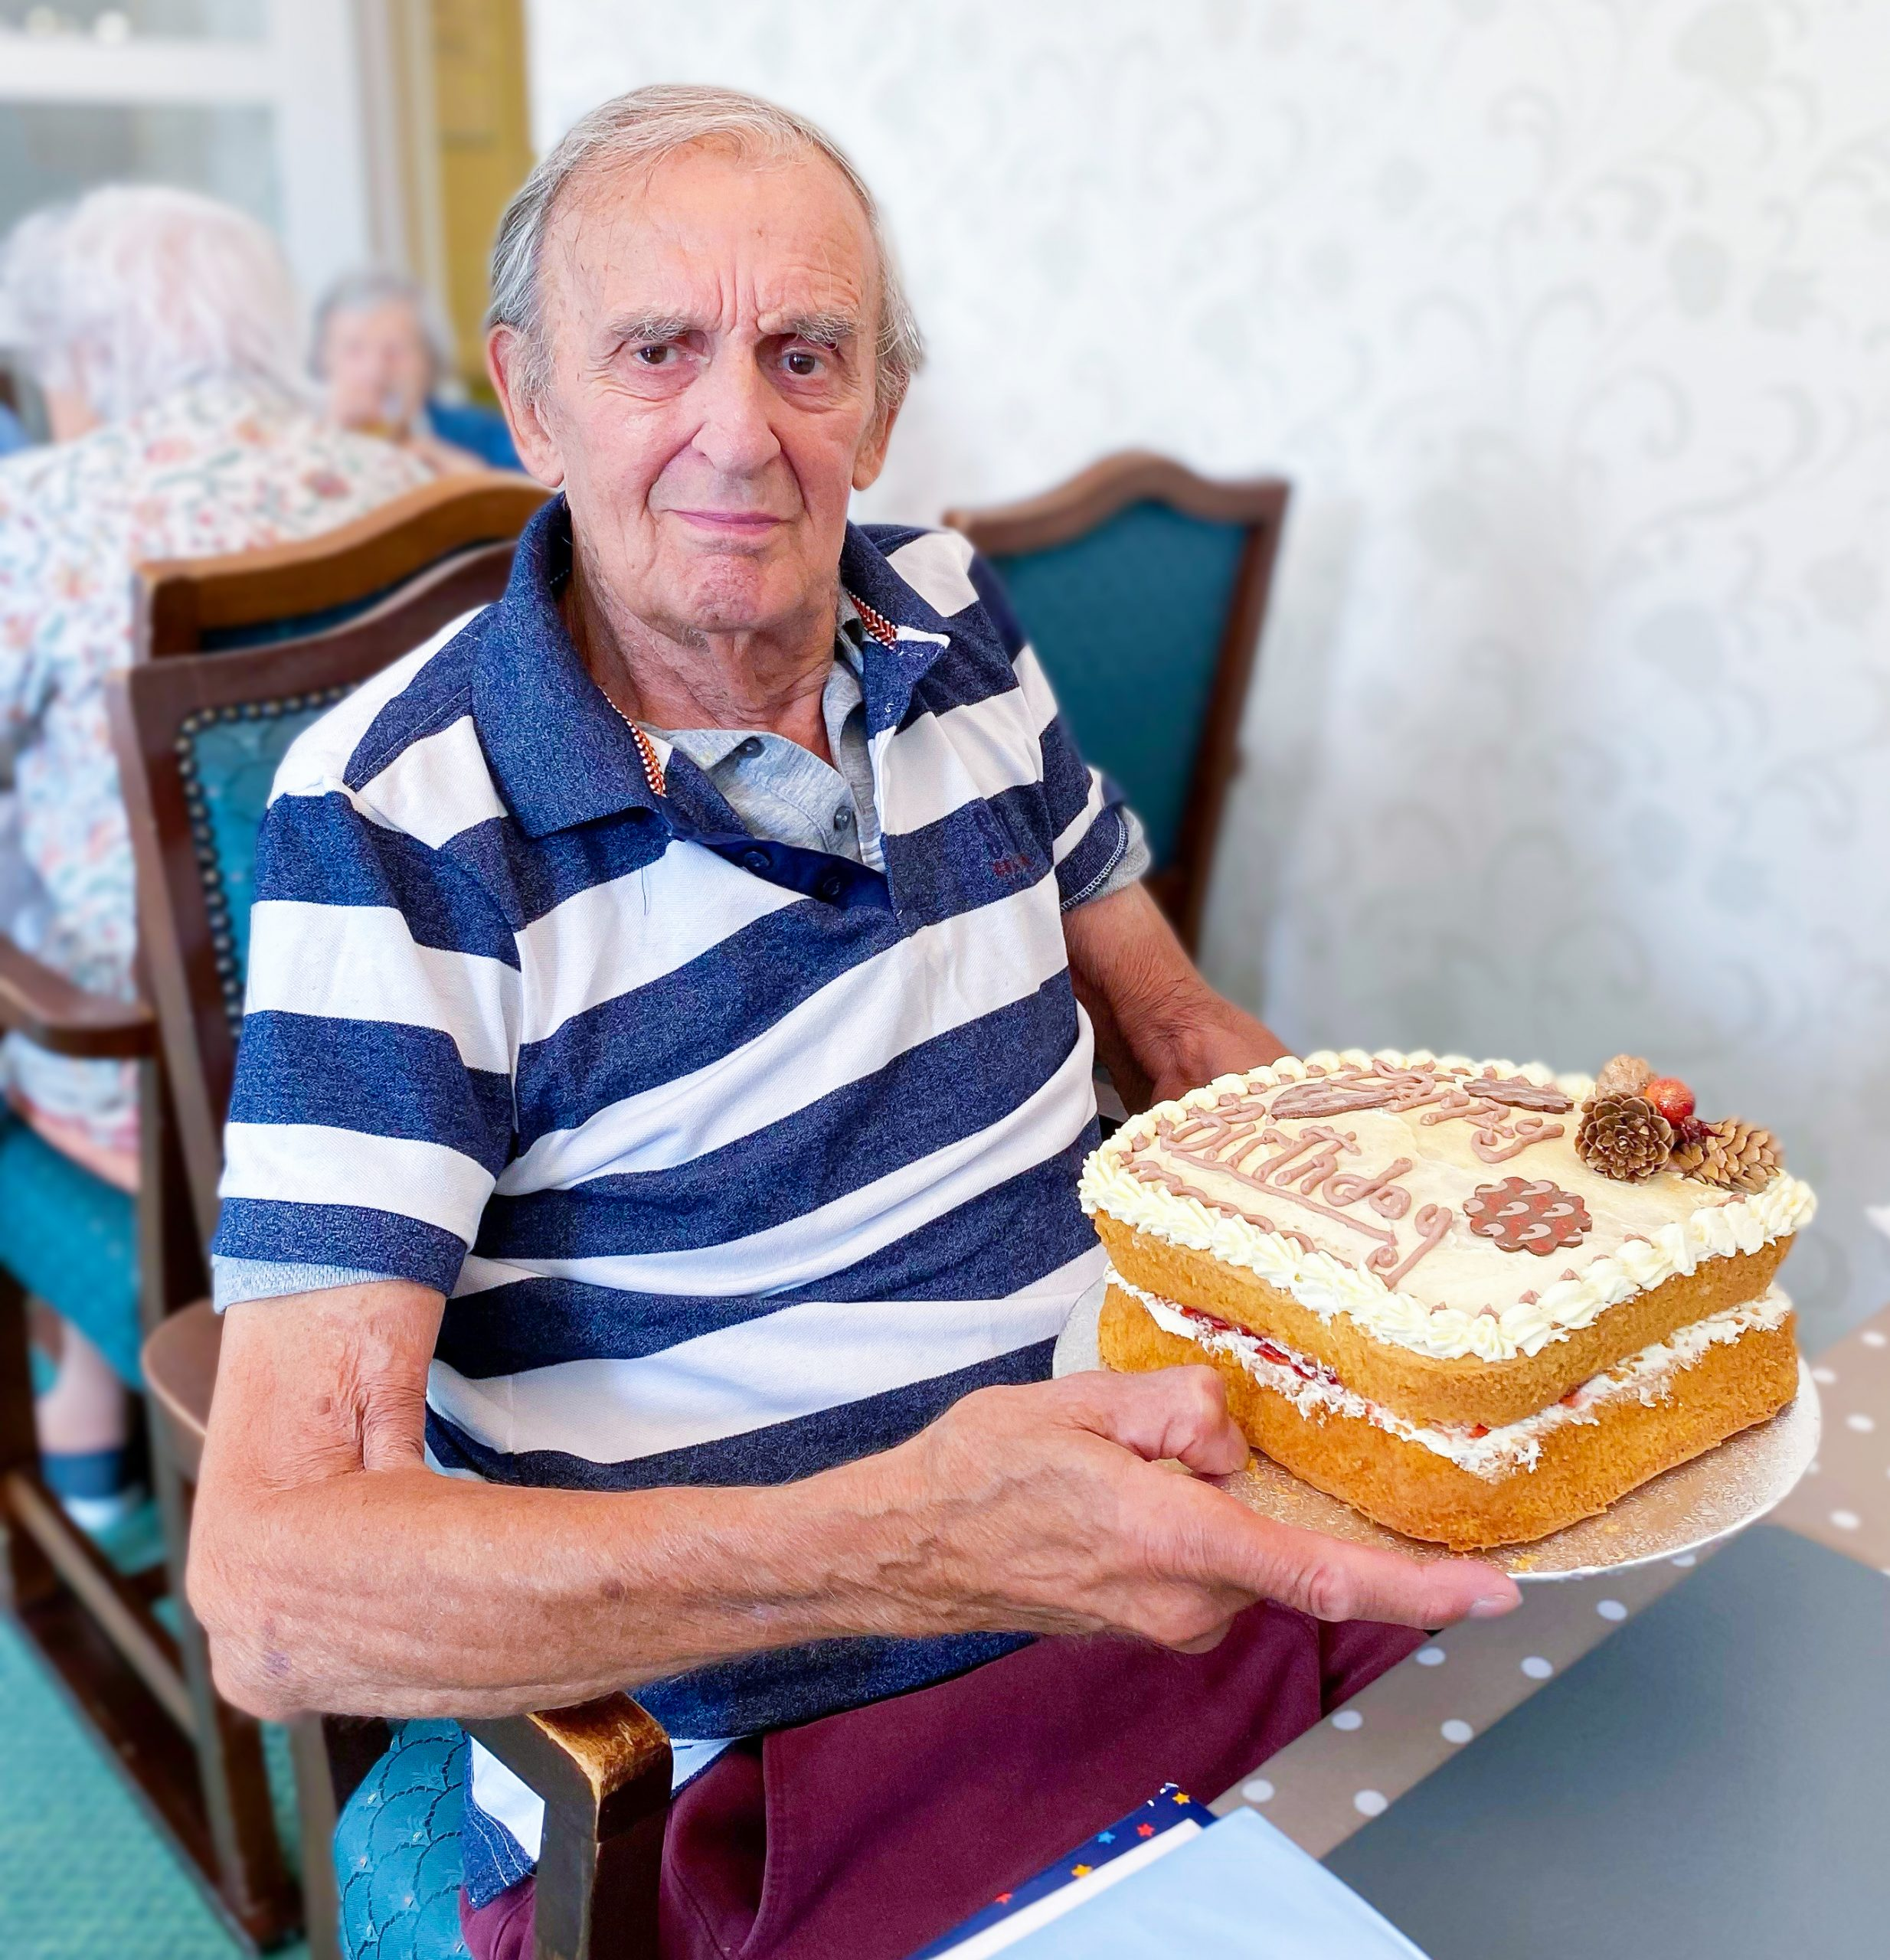 Redcot resident Keith holding a cake on his birthday.